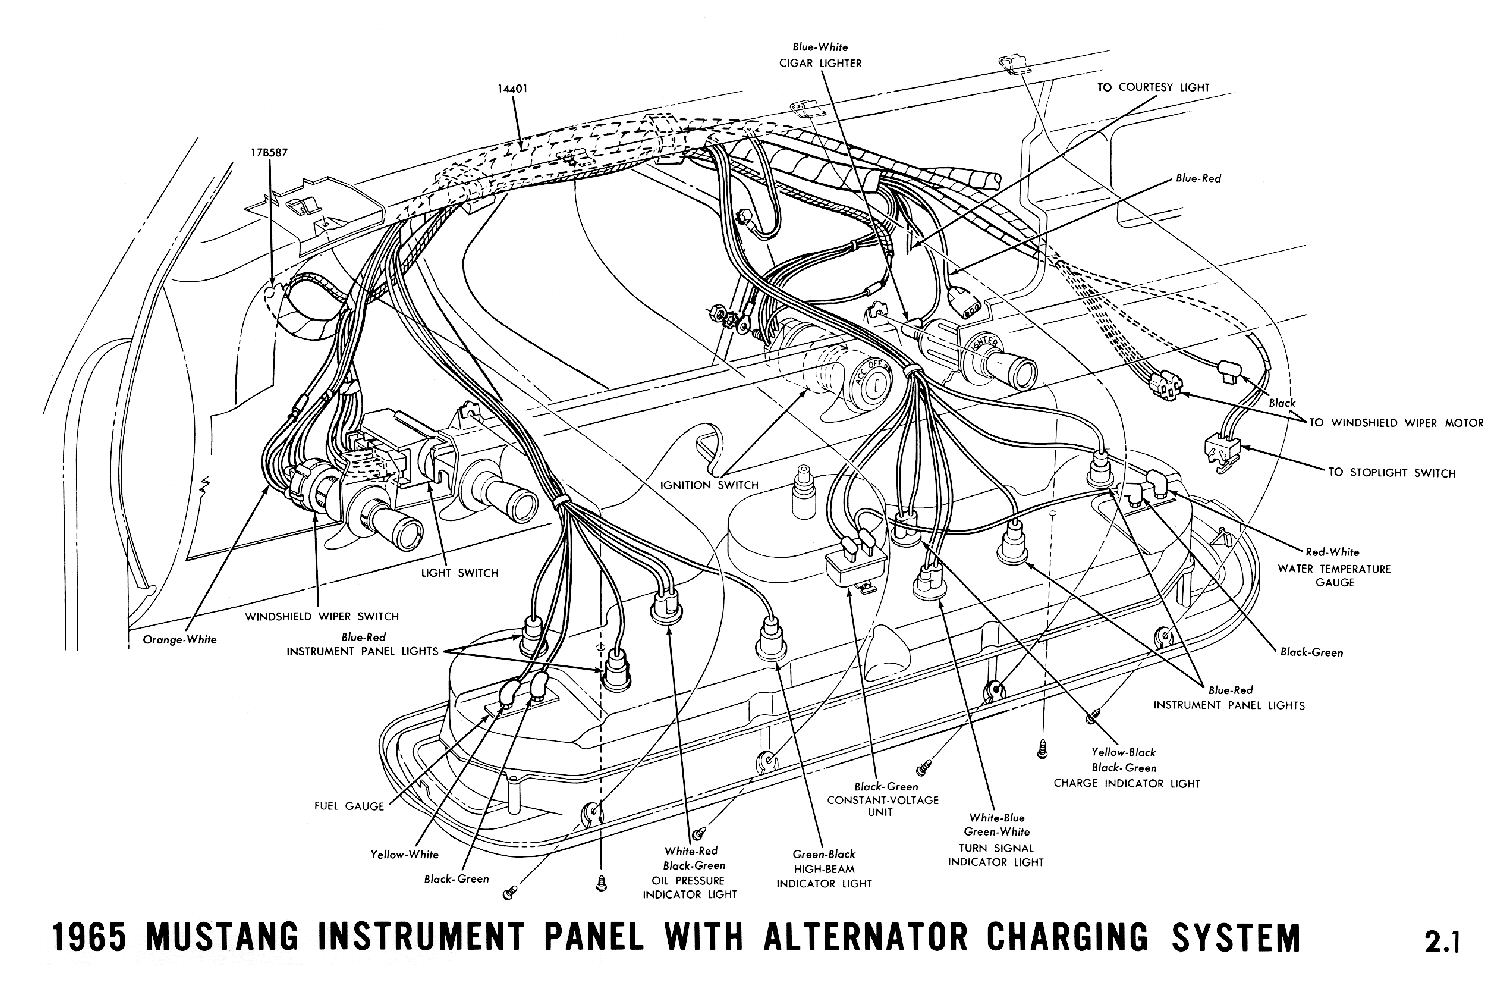 1965a 1965 mustang wiring diagrams average joe restoration 1970 Mustang Wiring Harness at creativeand.co